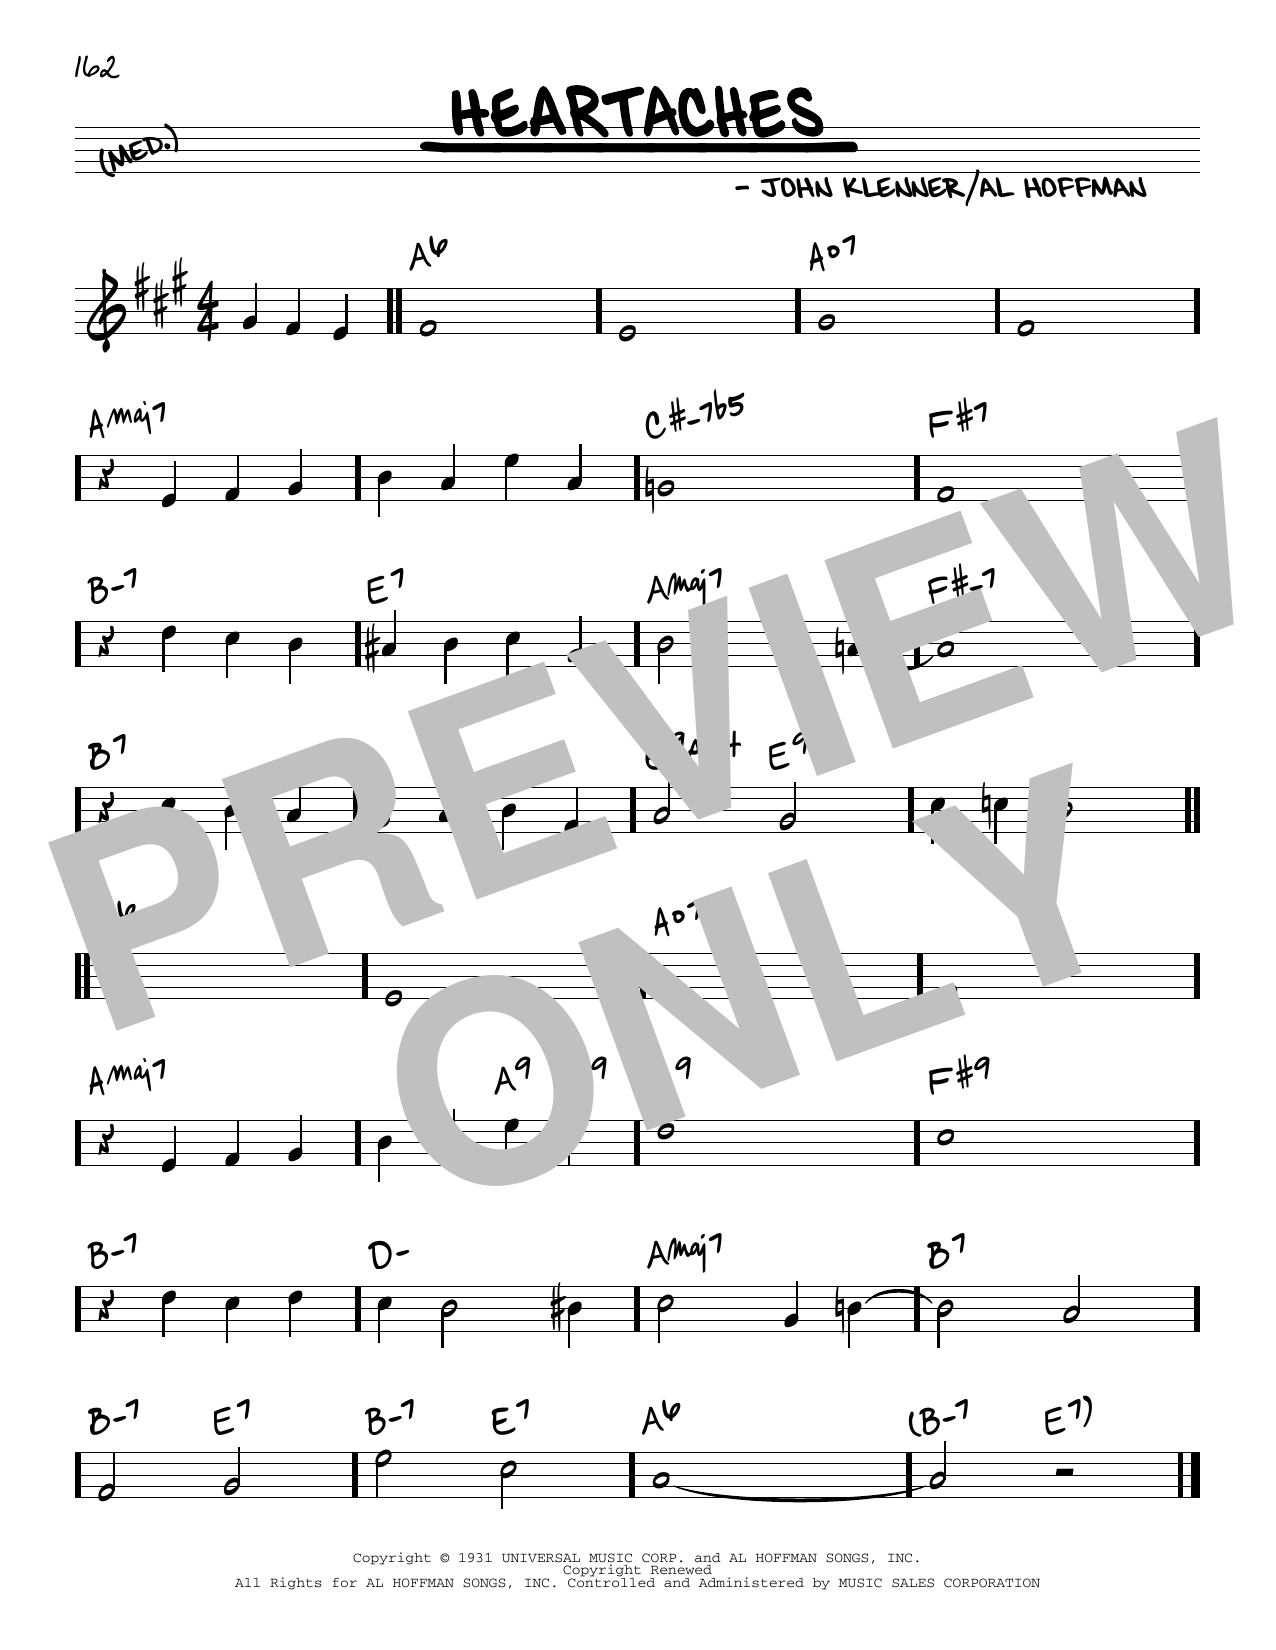 Al Hoffman and John Klenner Heartaches sheet music notes and chords. Download Printable PDF.